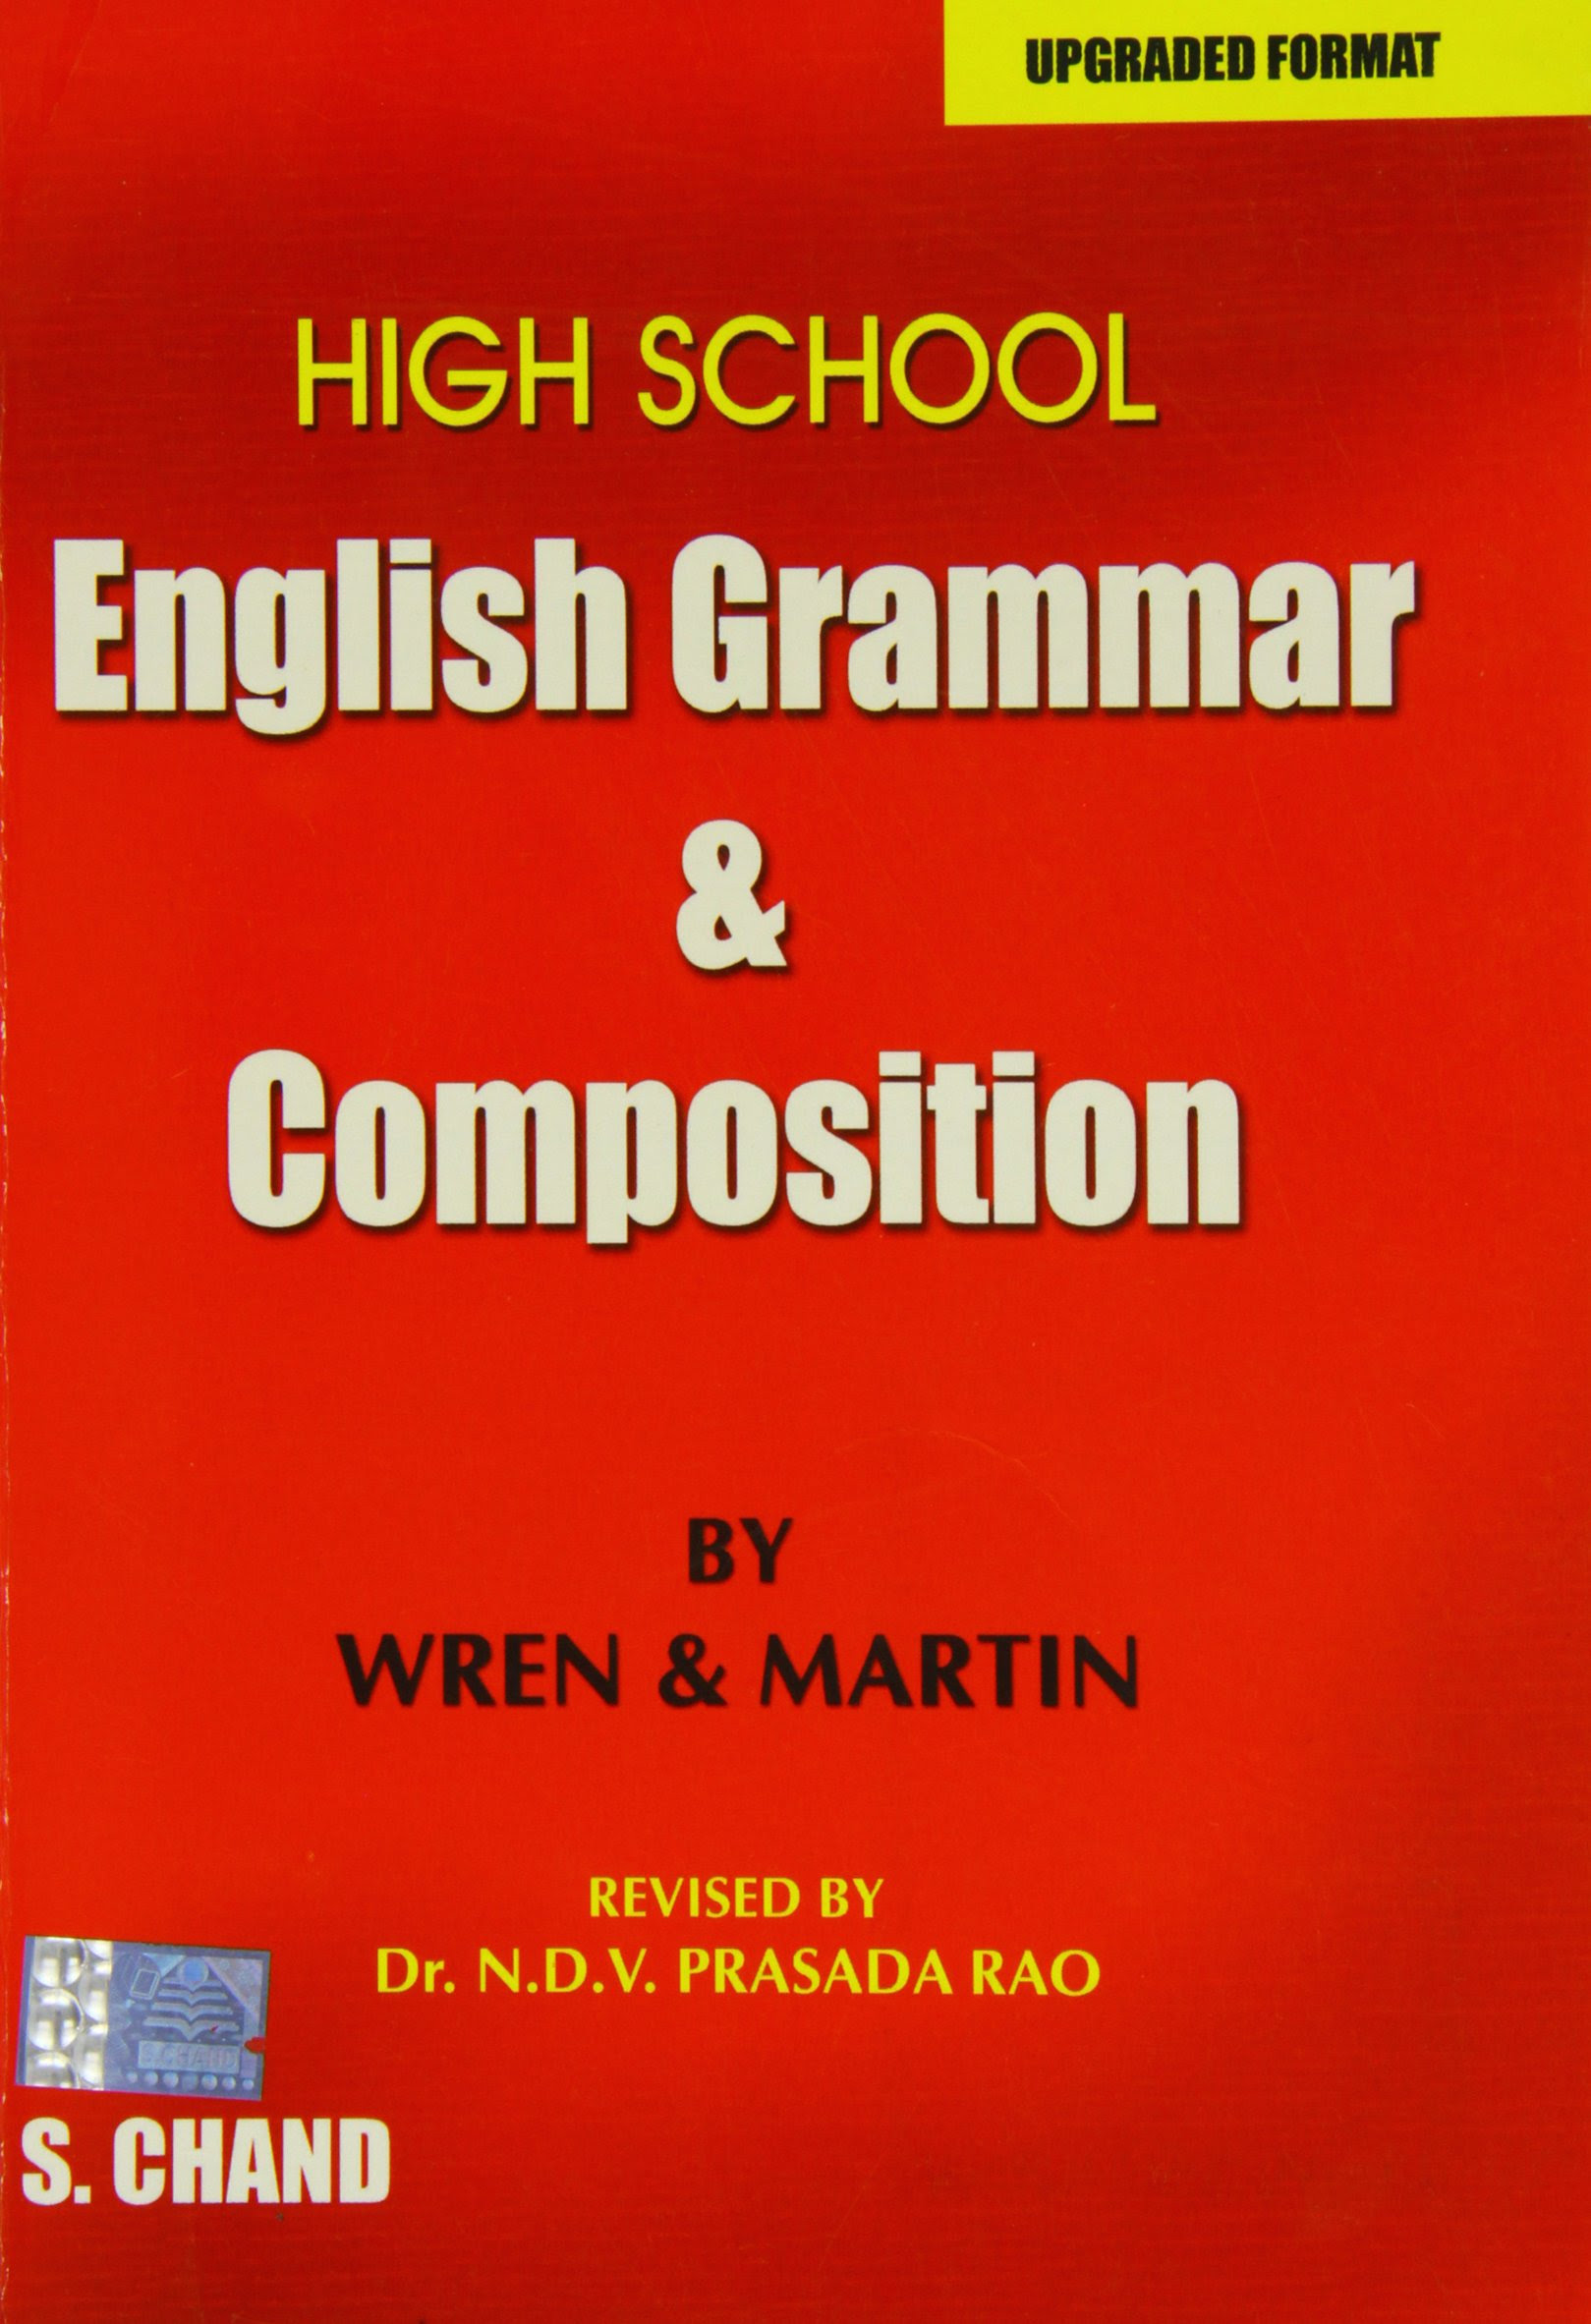 Download High School English Grammar and Composition by P.C Wren, N.D.V. Prasada Rao